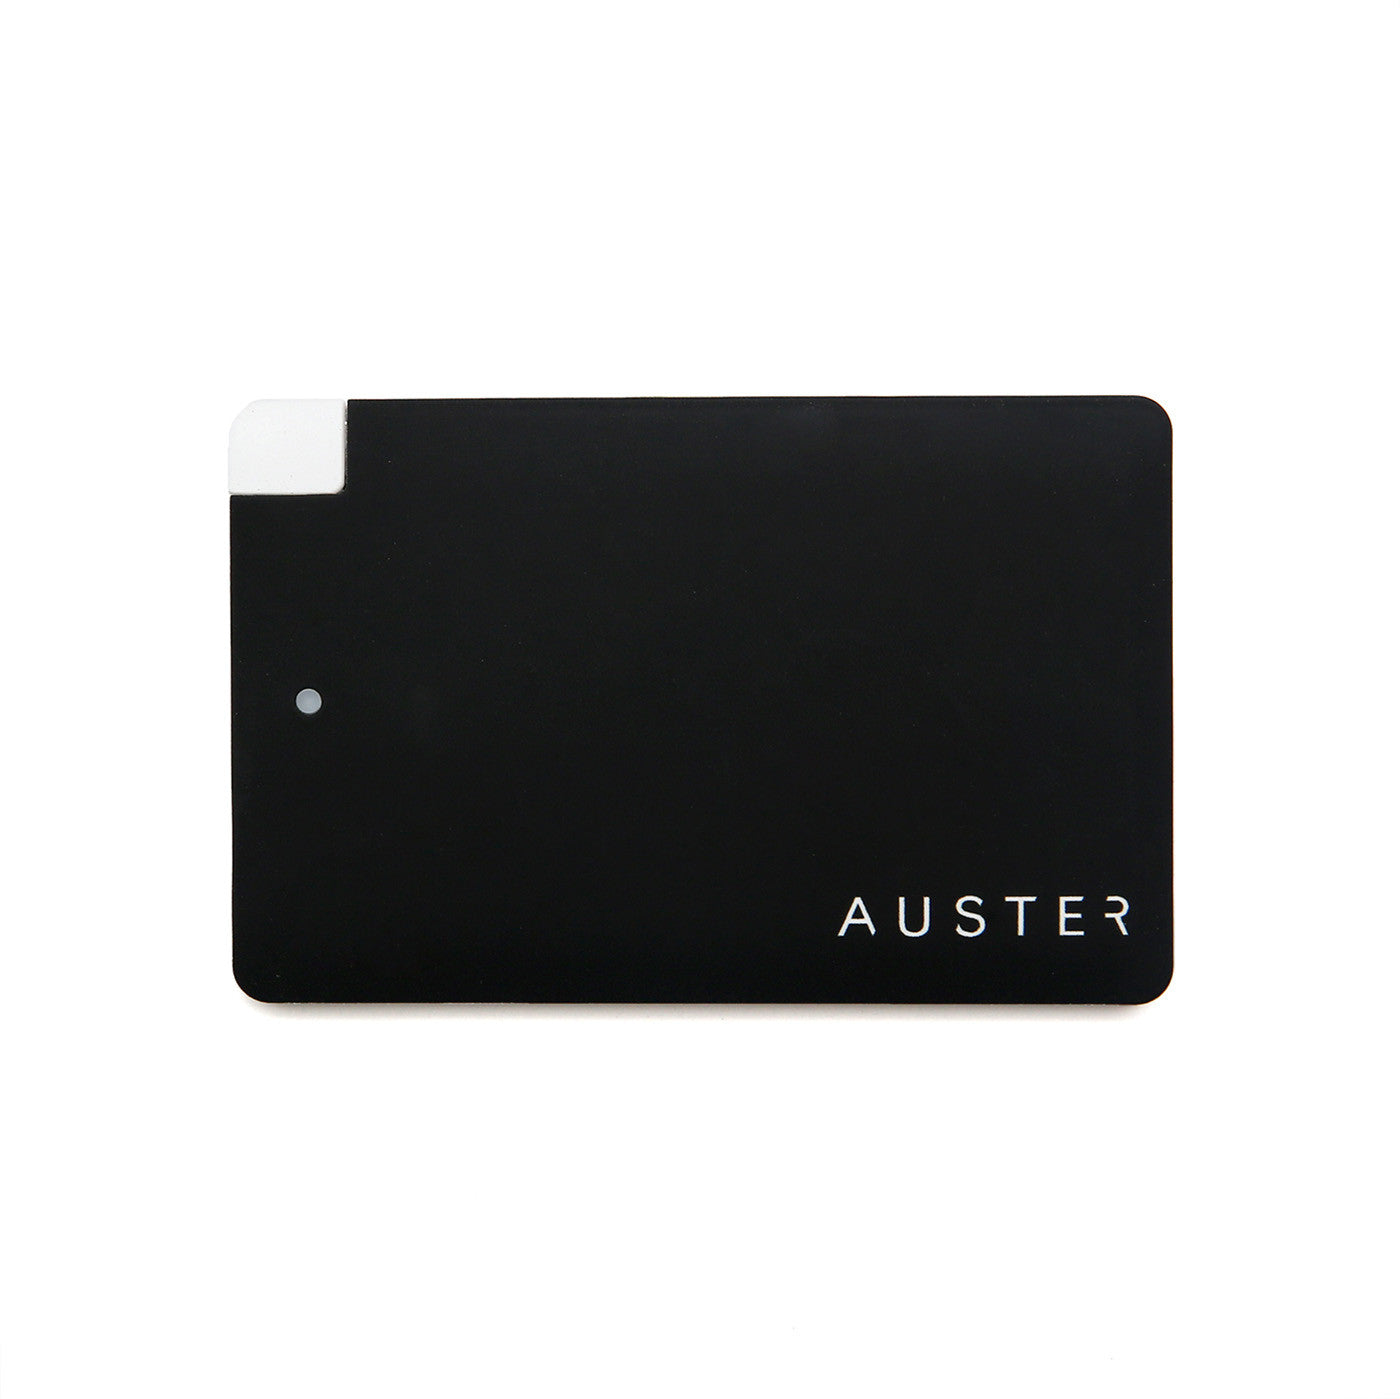 ONE AUSTER 2600 mAh POWERBANK – BLACK<br>(so you never run out of juice)